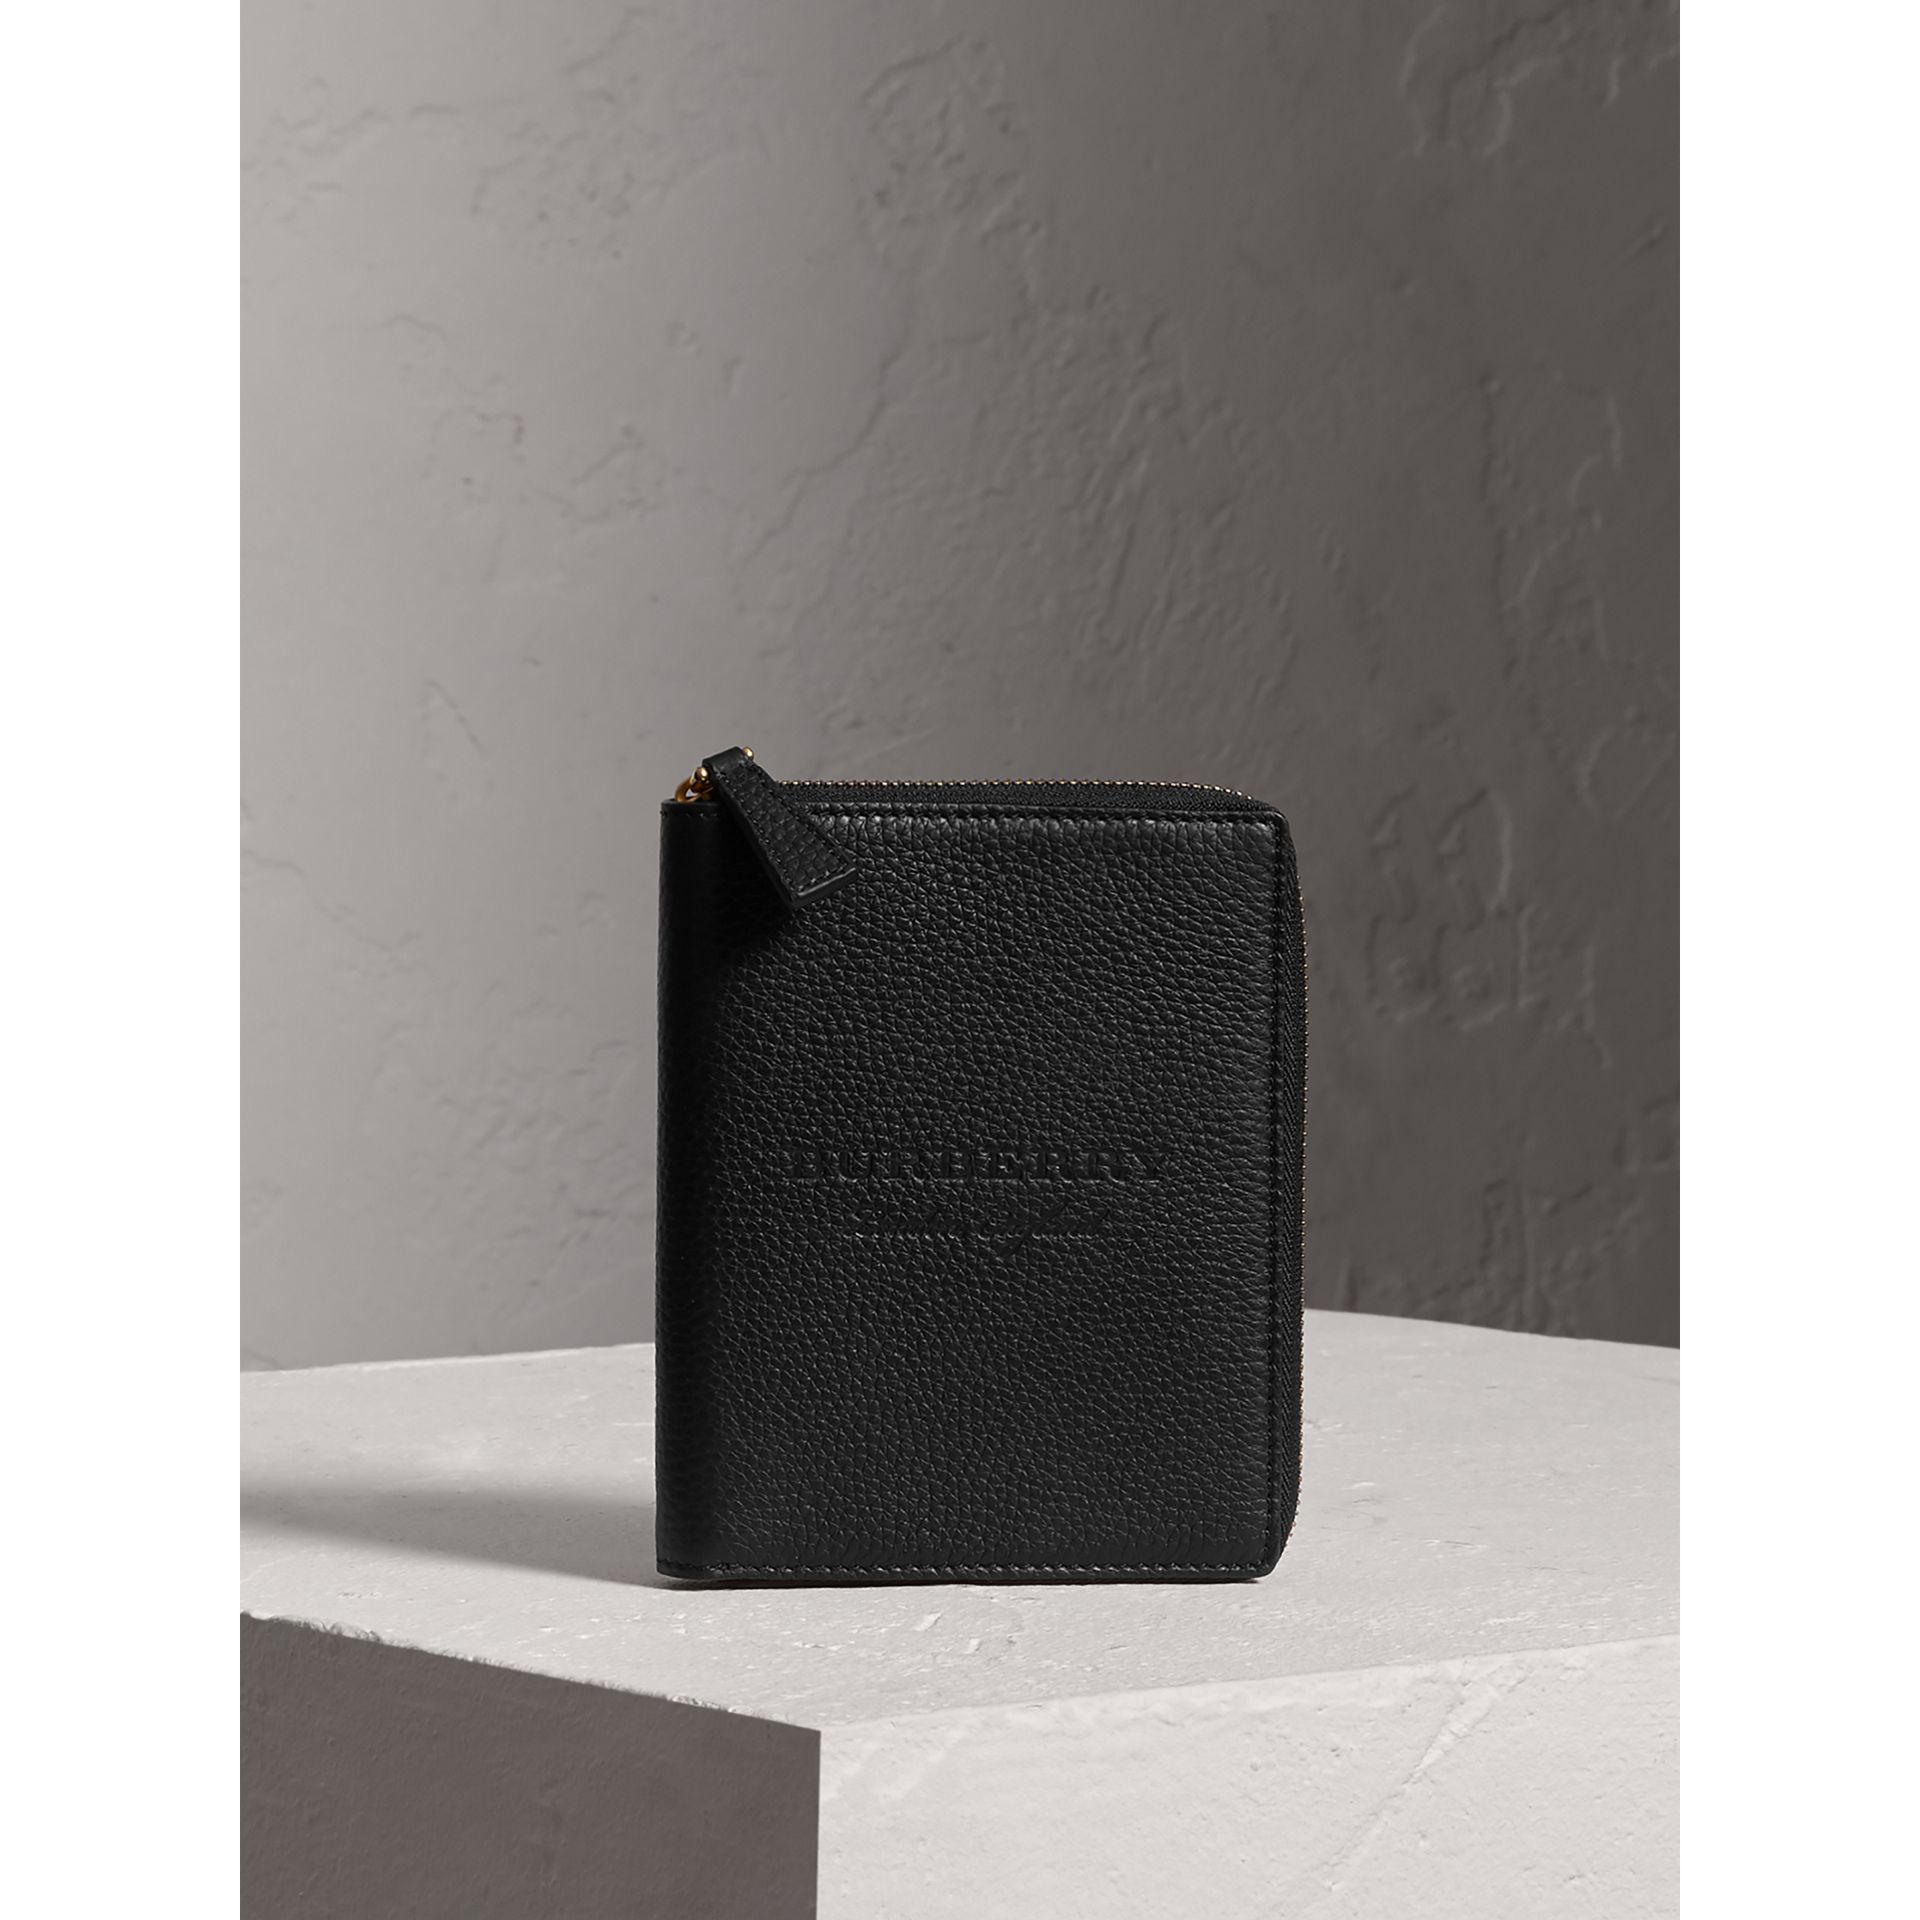 Embossed Grainy Leather Ziparound A6 Notebook Case in Black | Burberry United Kingdom - gallery image 4